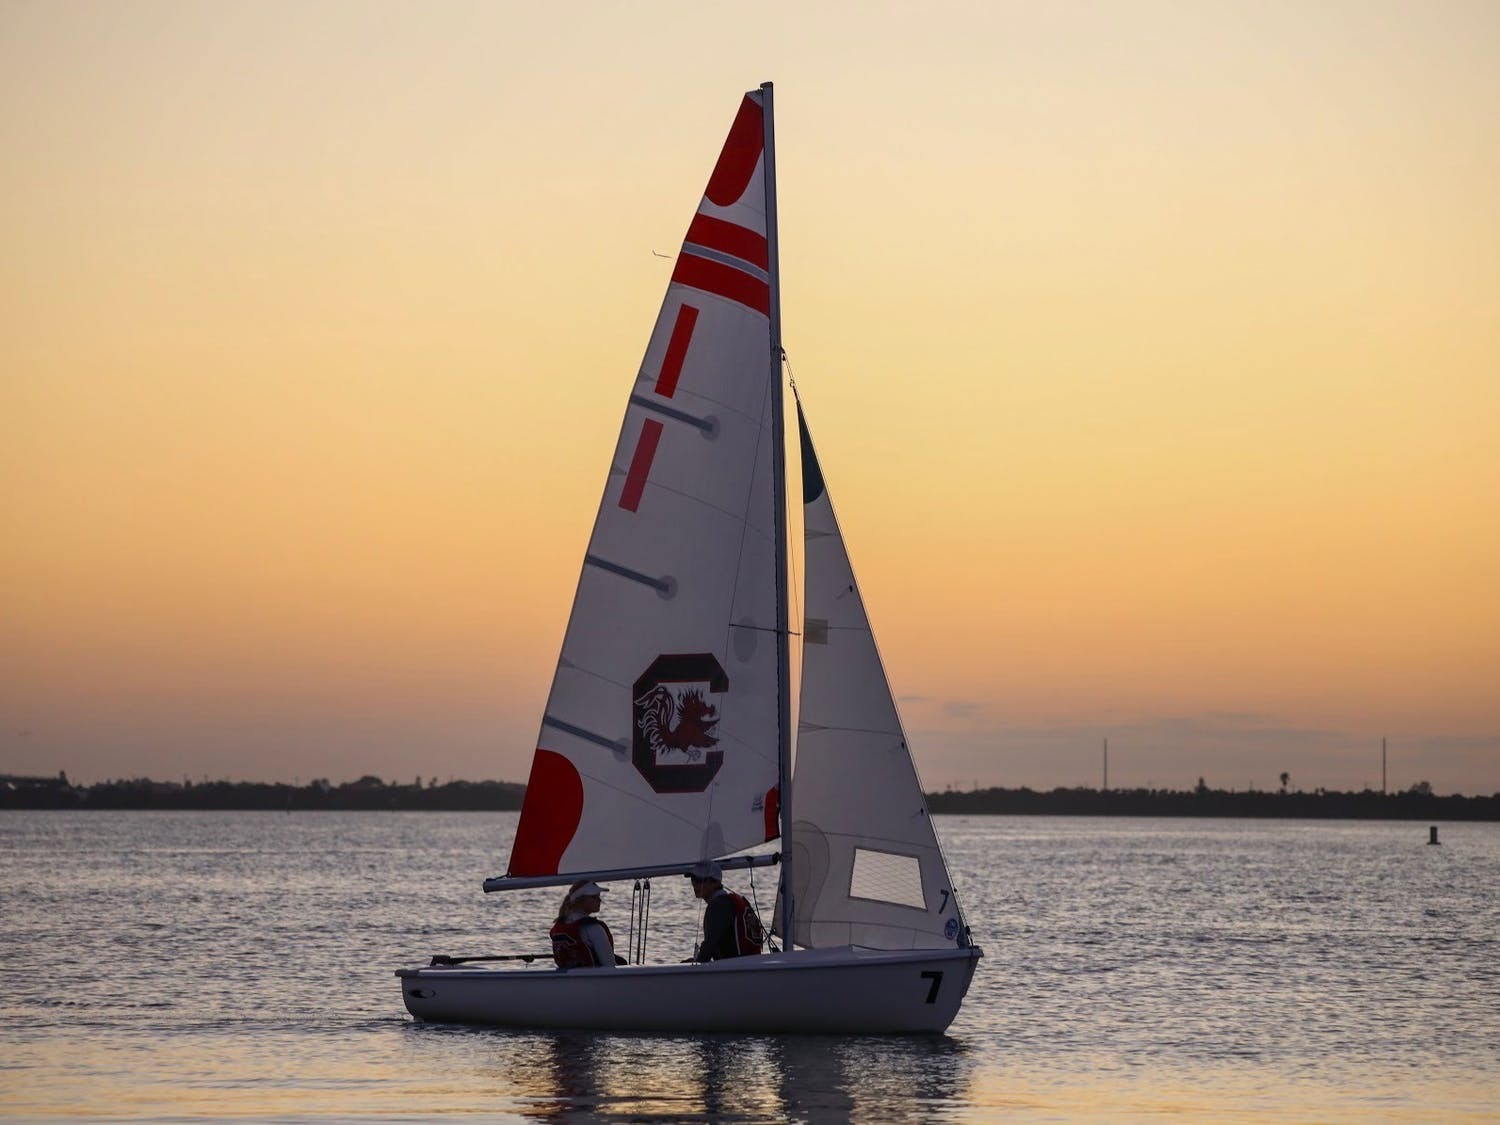 Two members of the sailing club sit on one of the sailboats during a sunset.